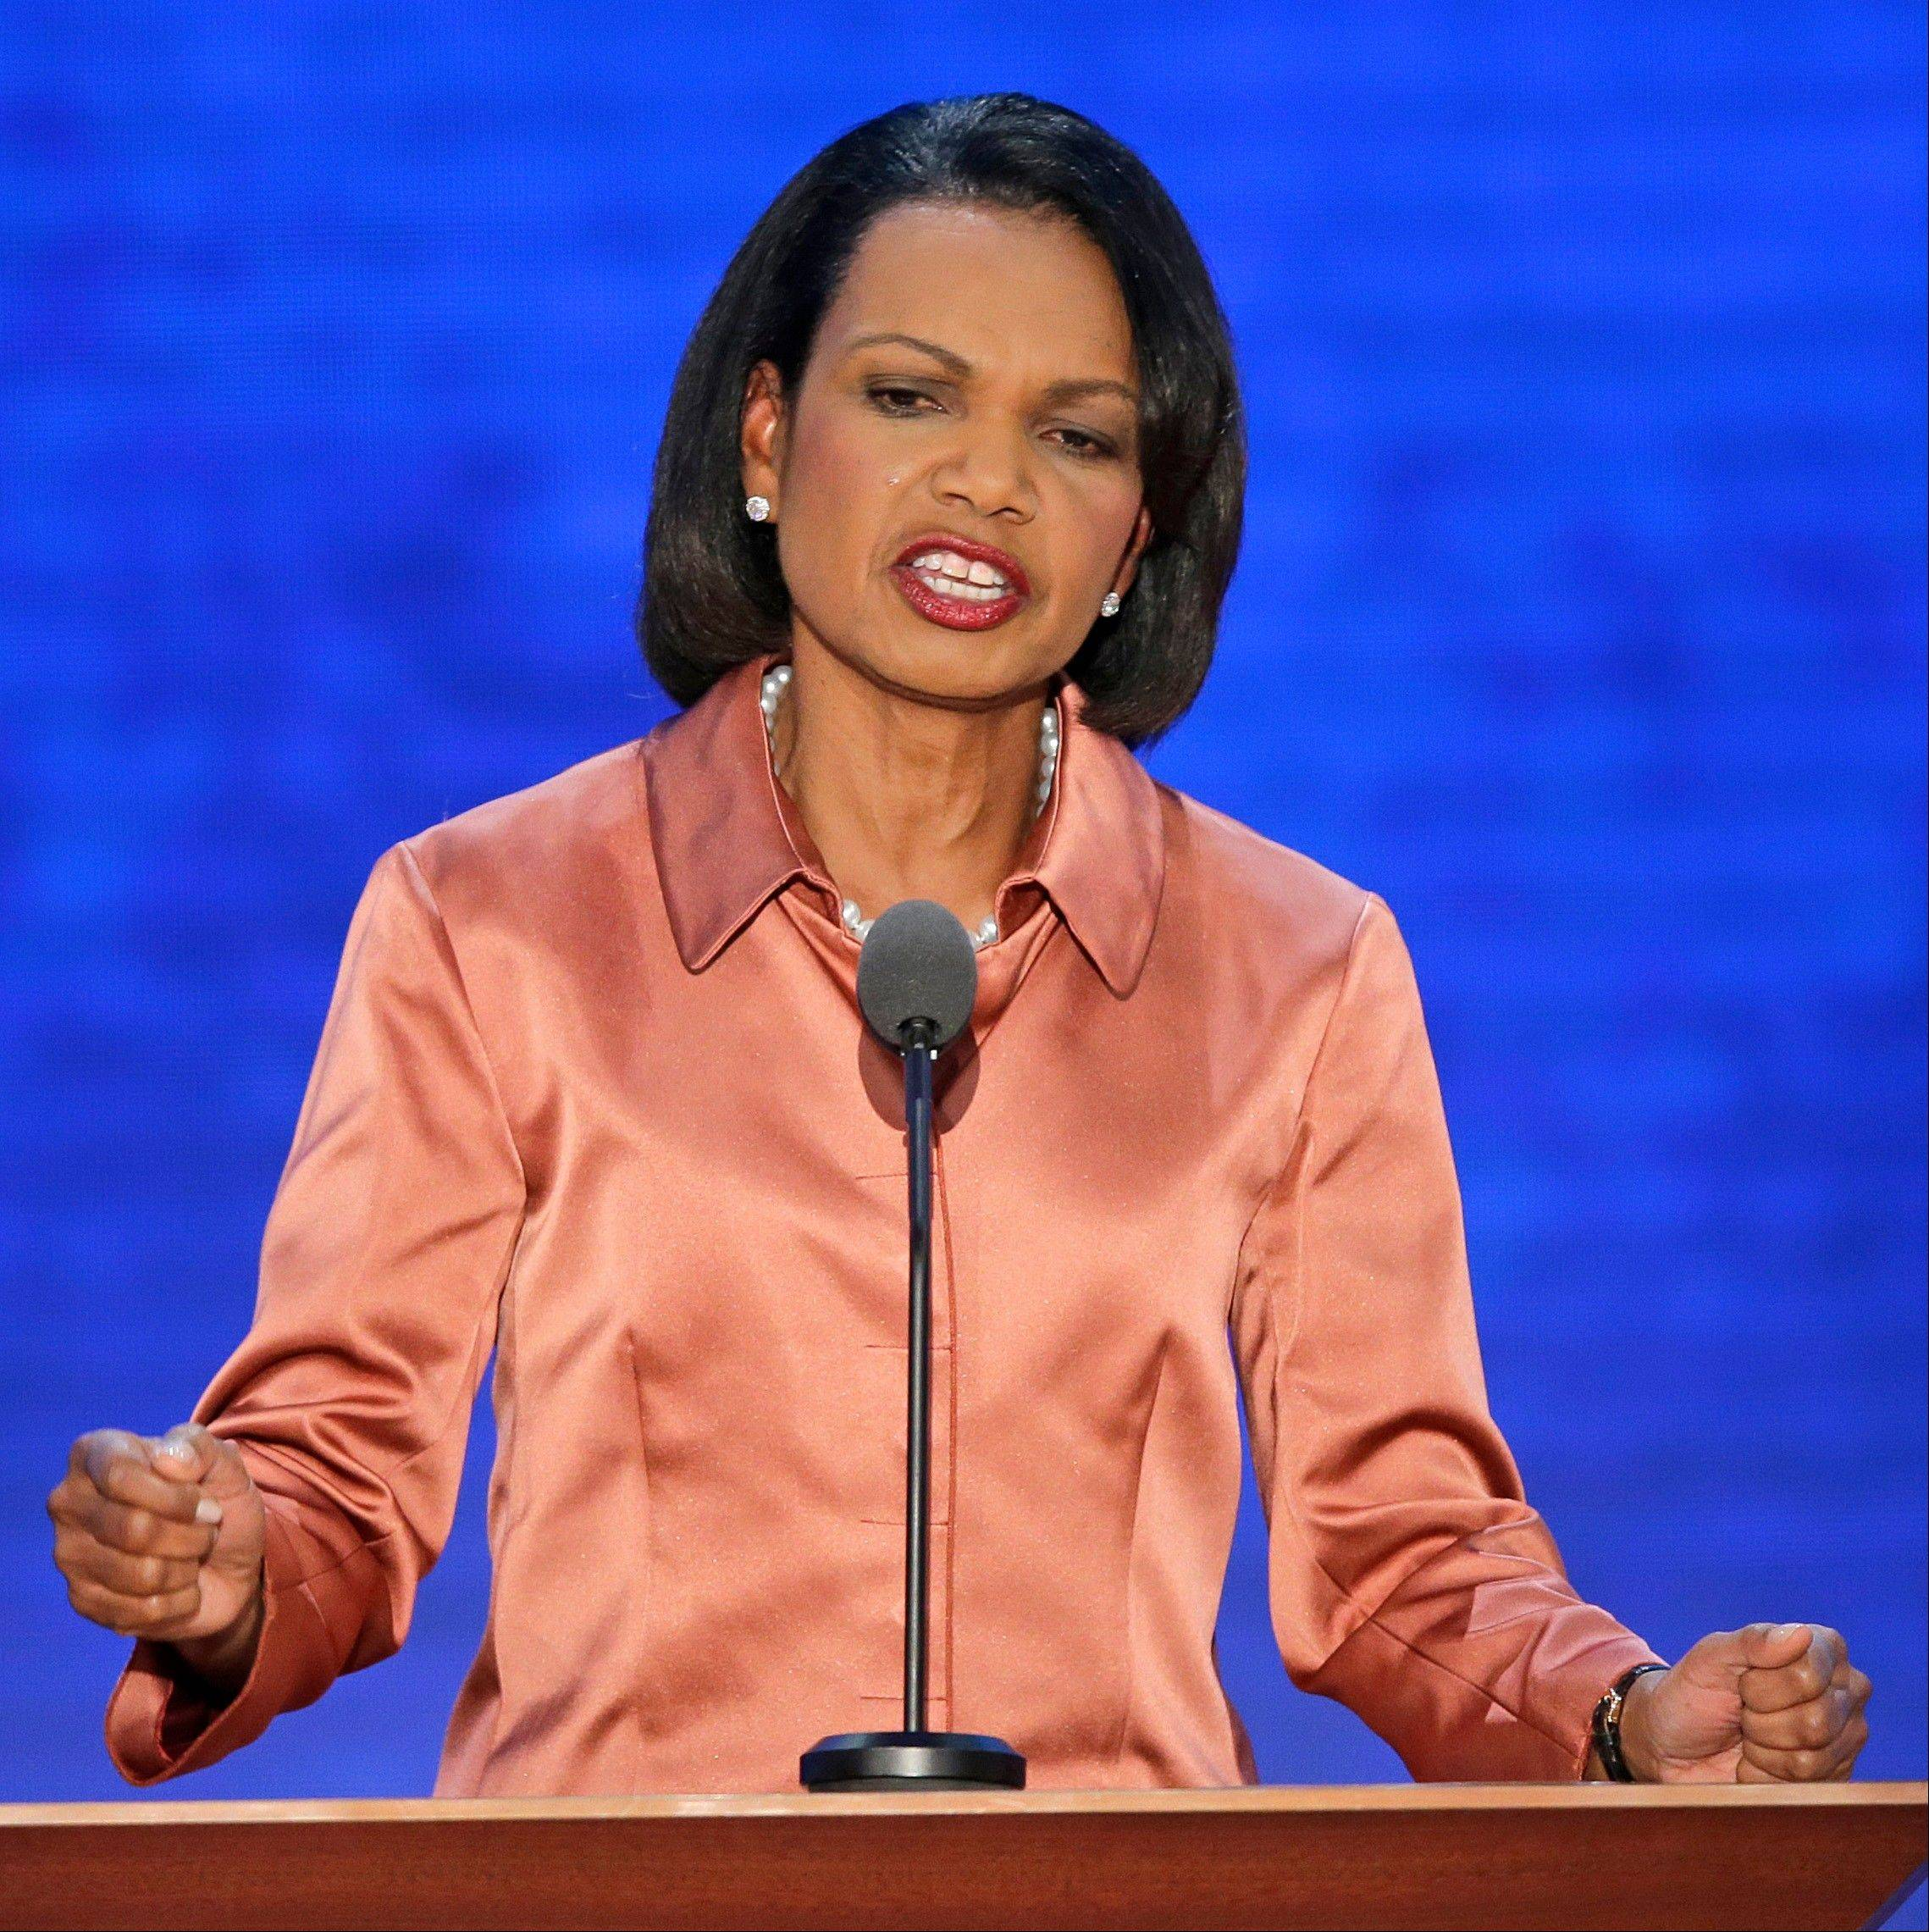 Former Secretary of State Condoleezza Rice addresses the Republican National Convention in Tampa, Fla., on Wednesday, Aug. 29, 2012.